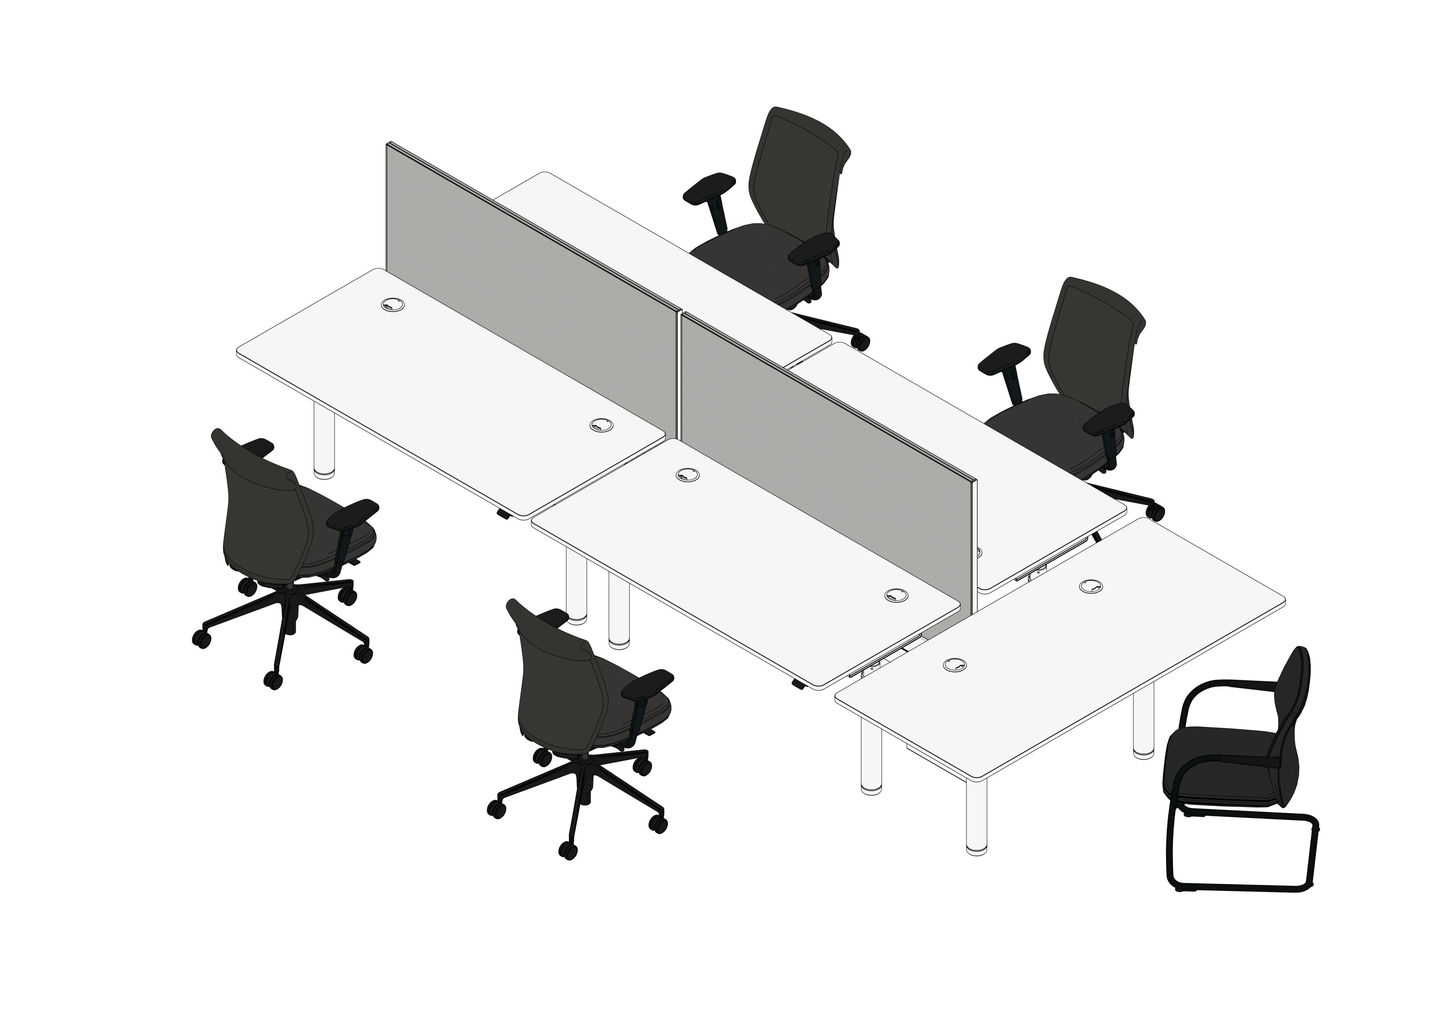 Tyde 2 Cluster 410 x 172 Additional Table, ID Cloud, ID Visitor Soft